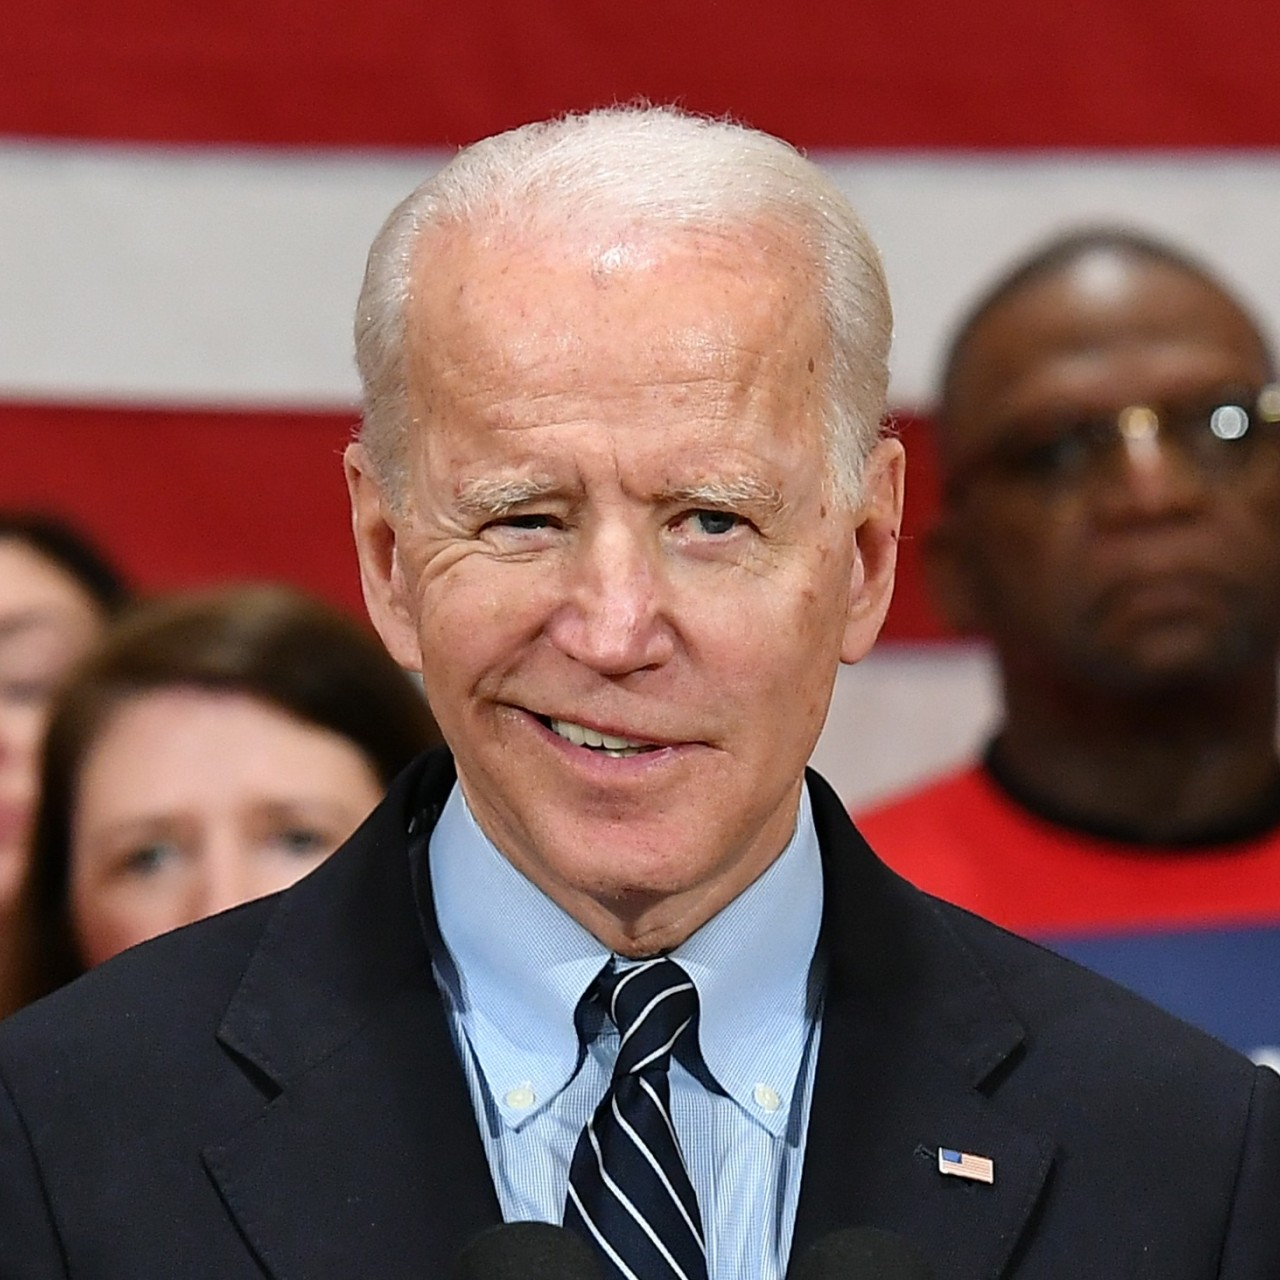 Biden, on brink of White House run, reaches out to Sanders to ...